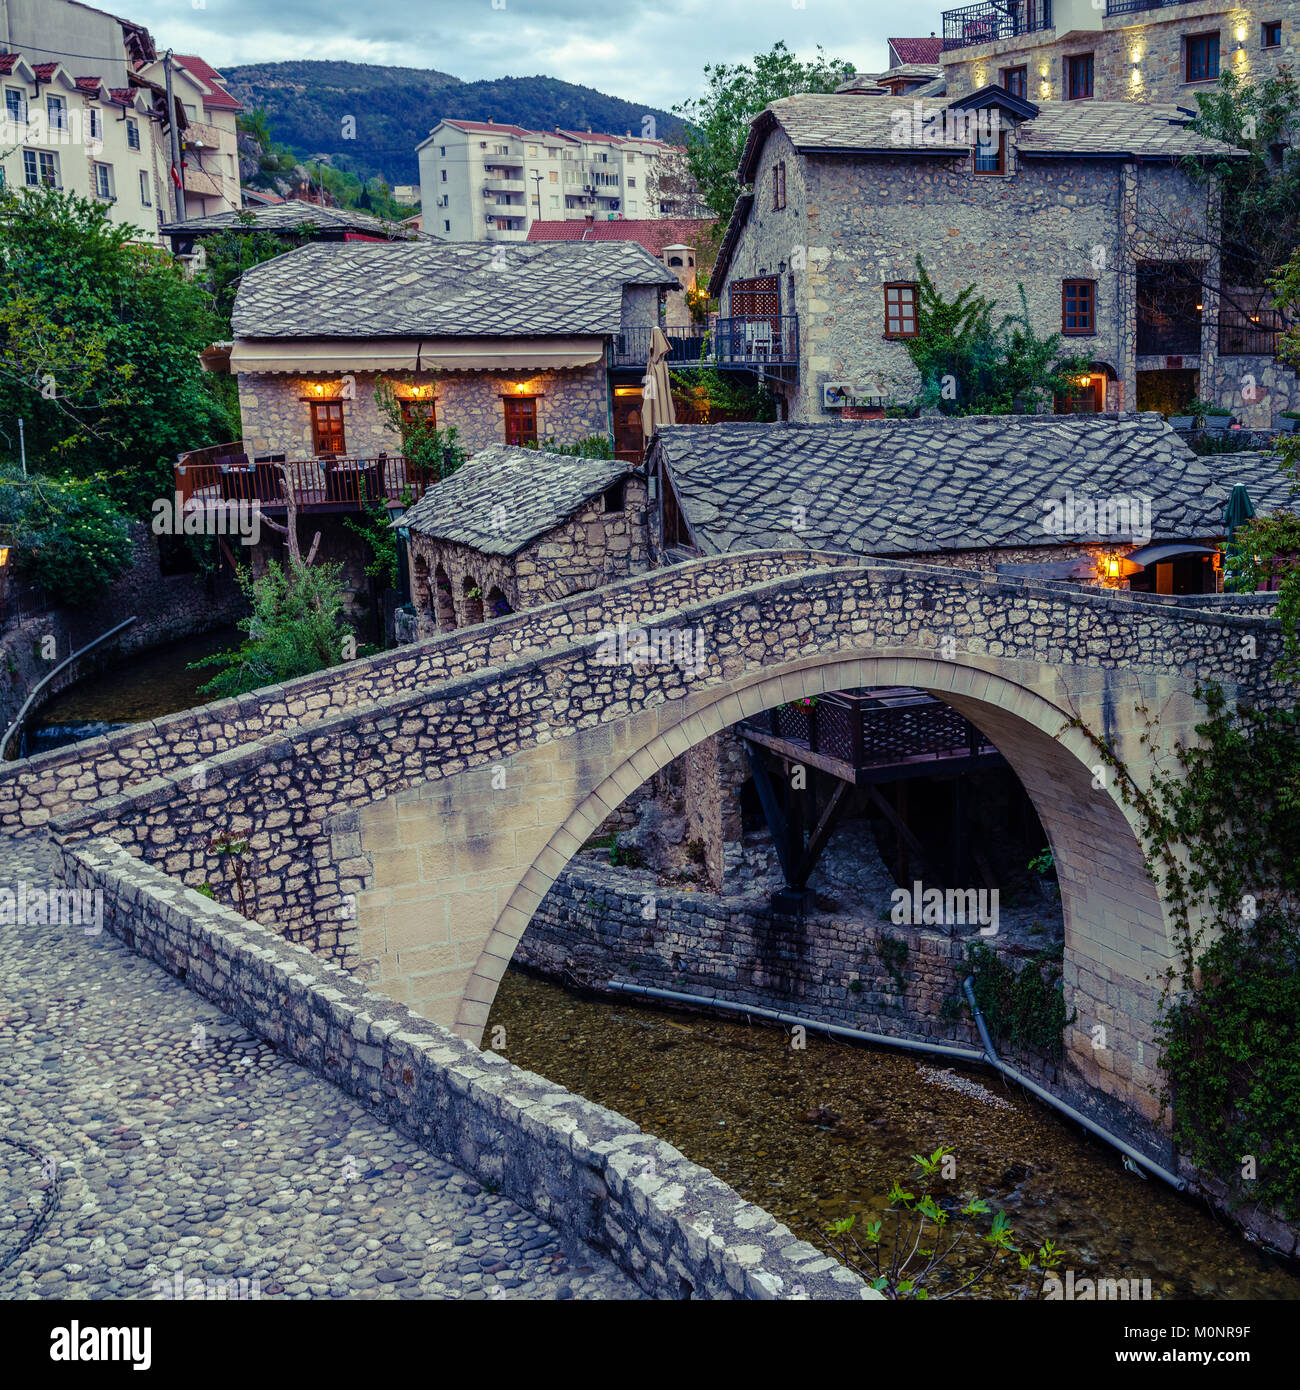 A foot bridge in the old part of Mostar in Bosnia-Herzegovina Stock Photo